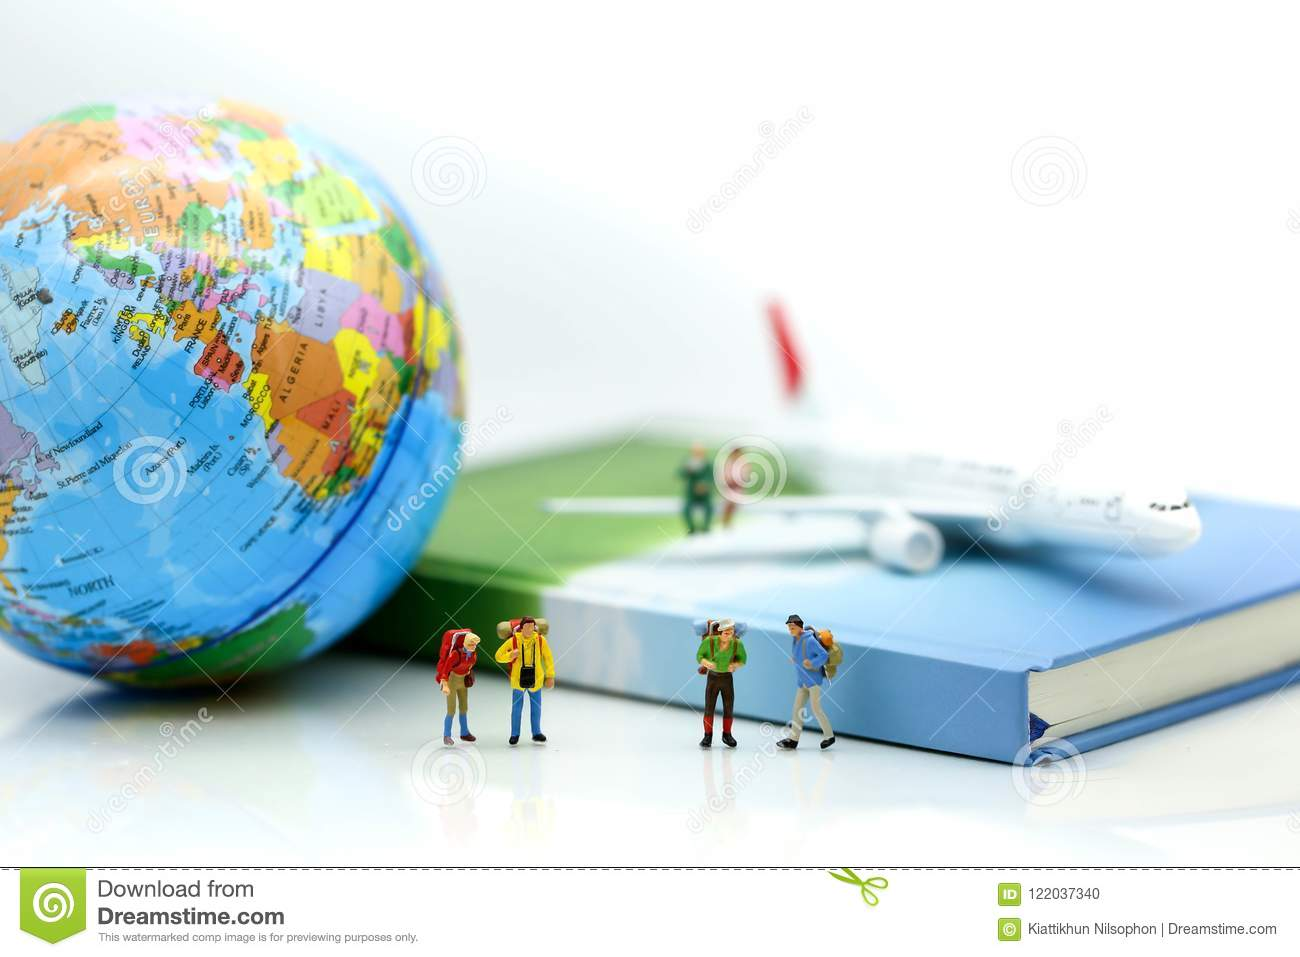 Miniature people : Travelers with world globe and airplane , traveling or exploring the world, relax travel concepts.